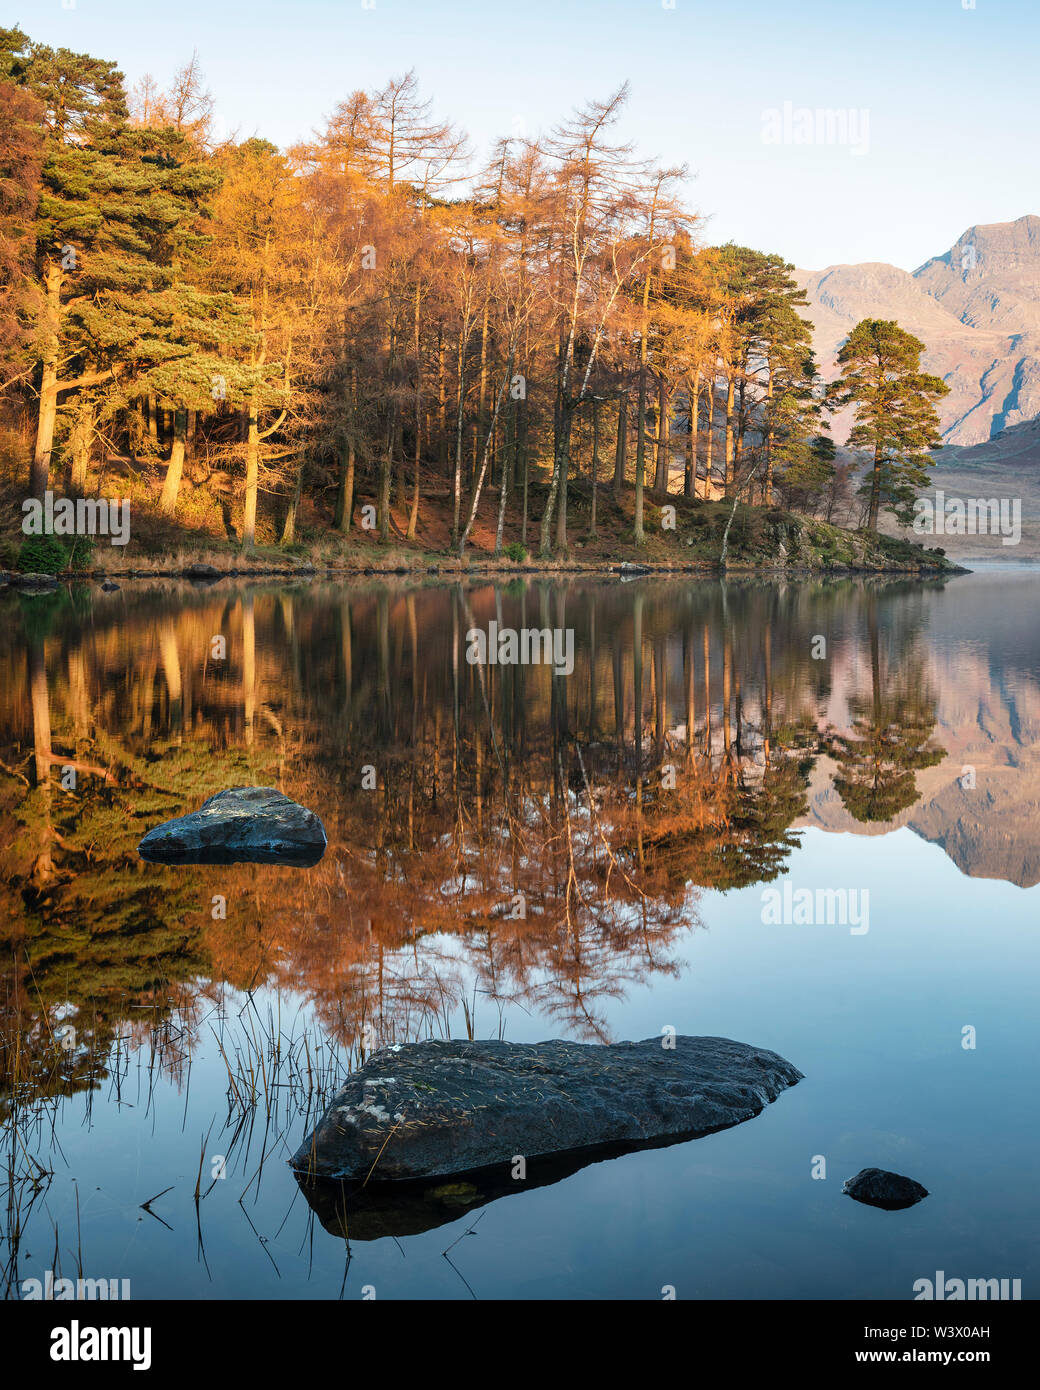 Stunning Autumn Fall vibrant sunrise over Blea Tarn in the Lake District with High Raise and The Langdales in the distance - Stock Image